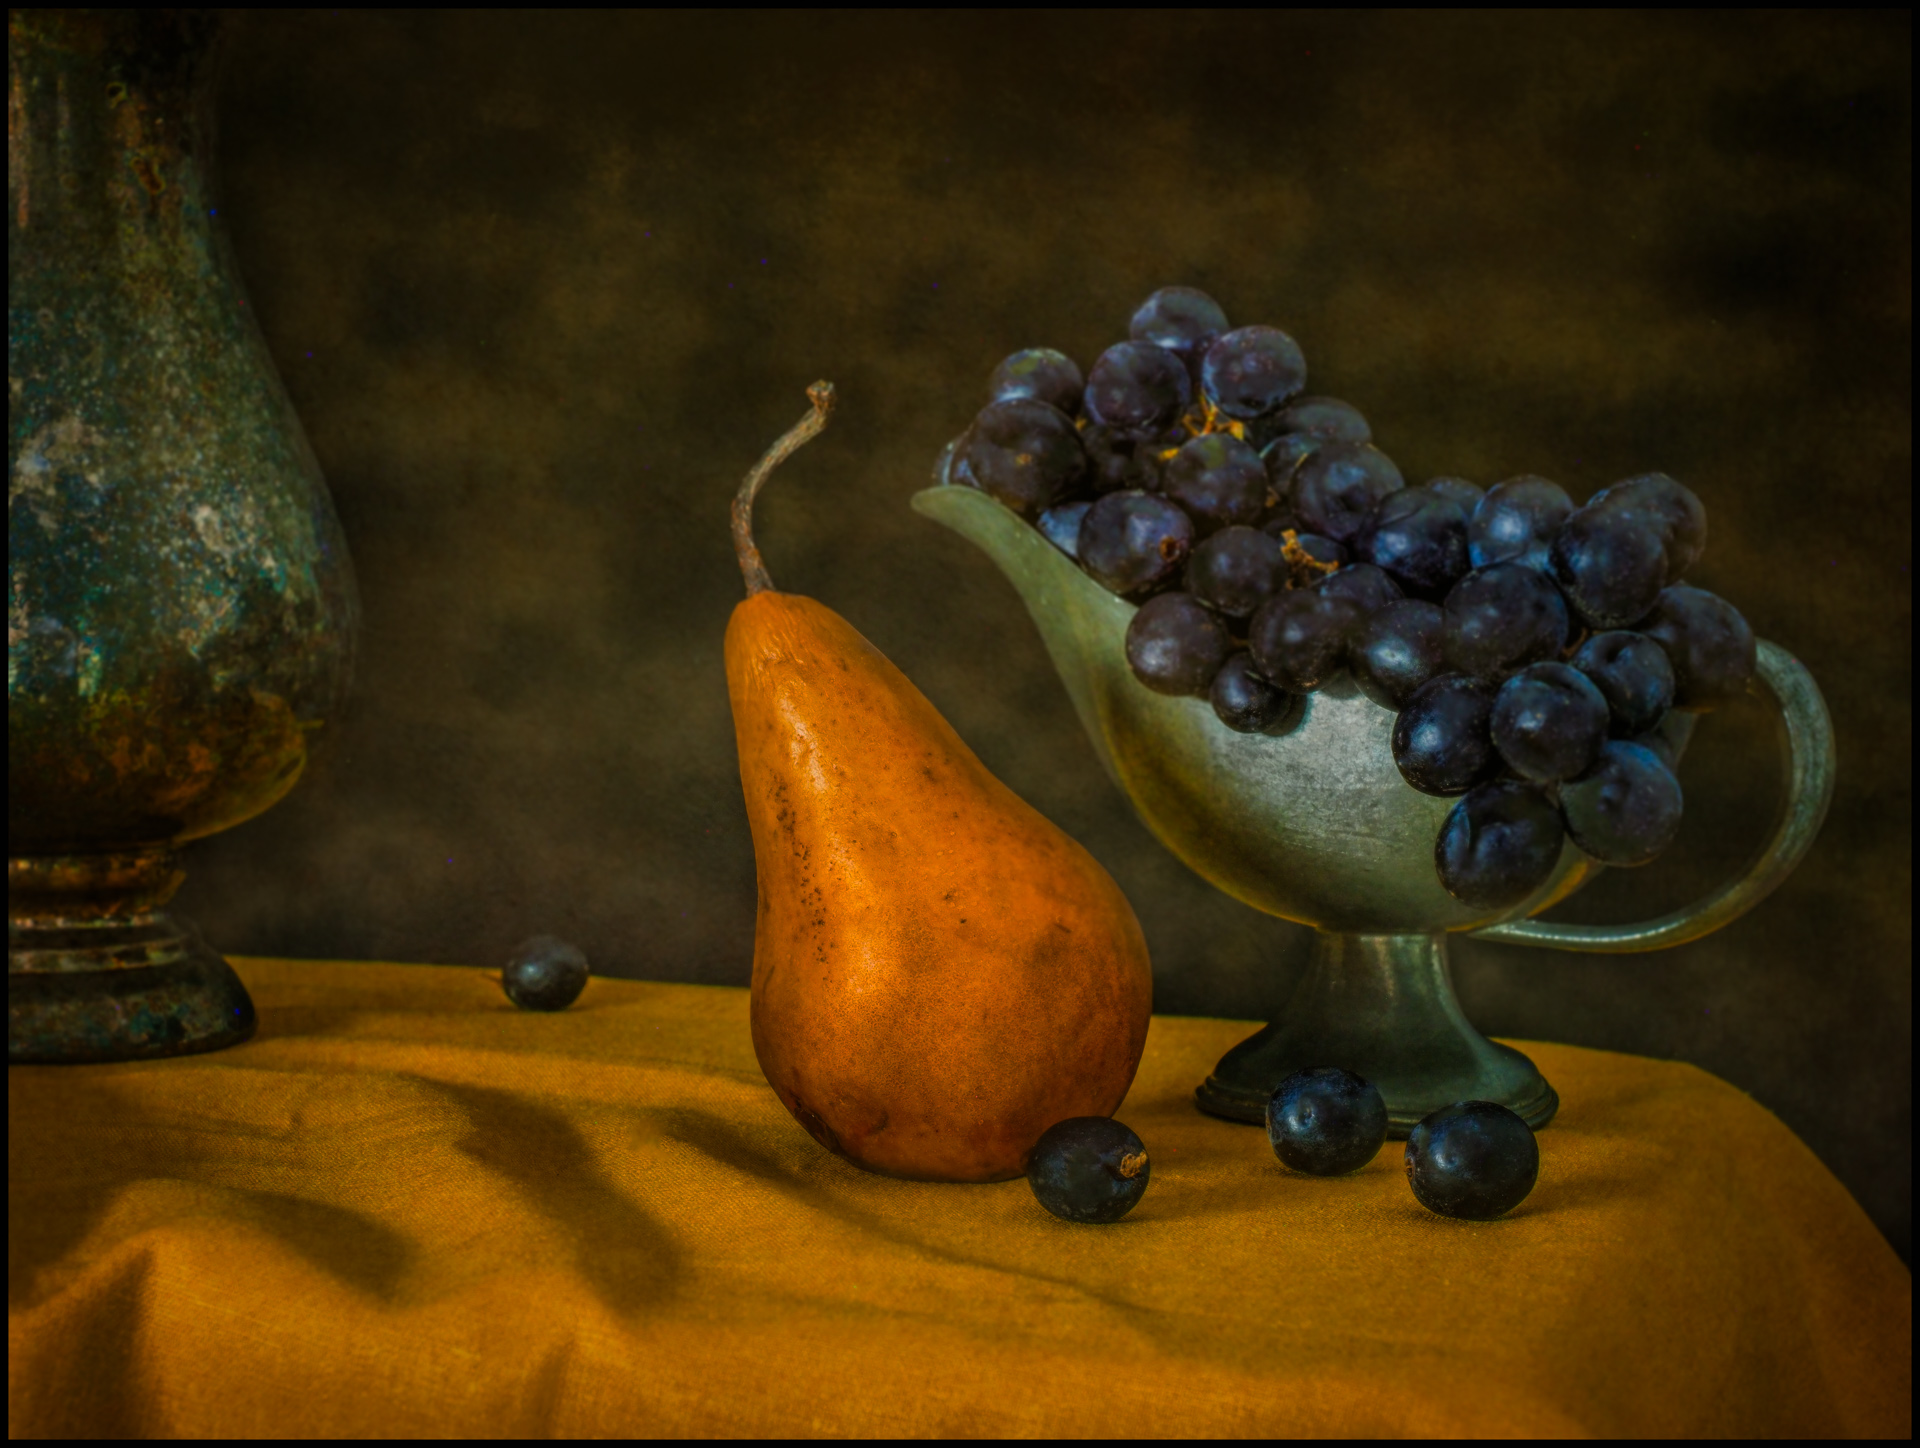 Still Life with Pear and Grapes